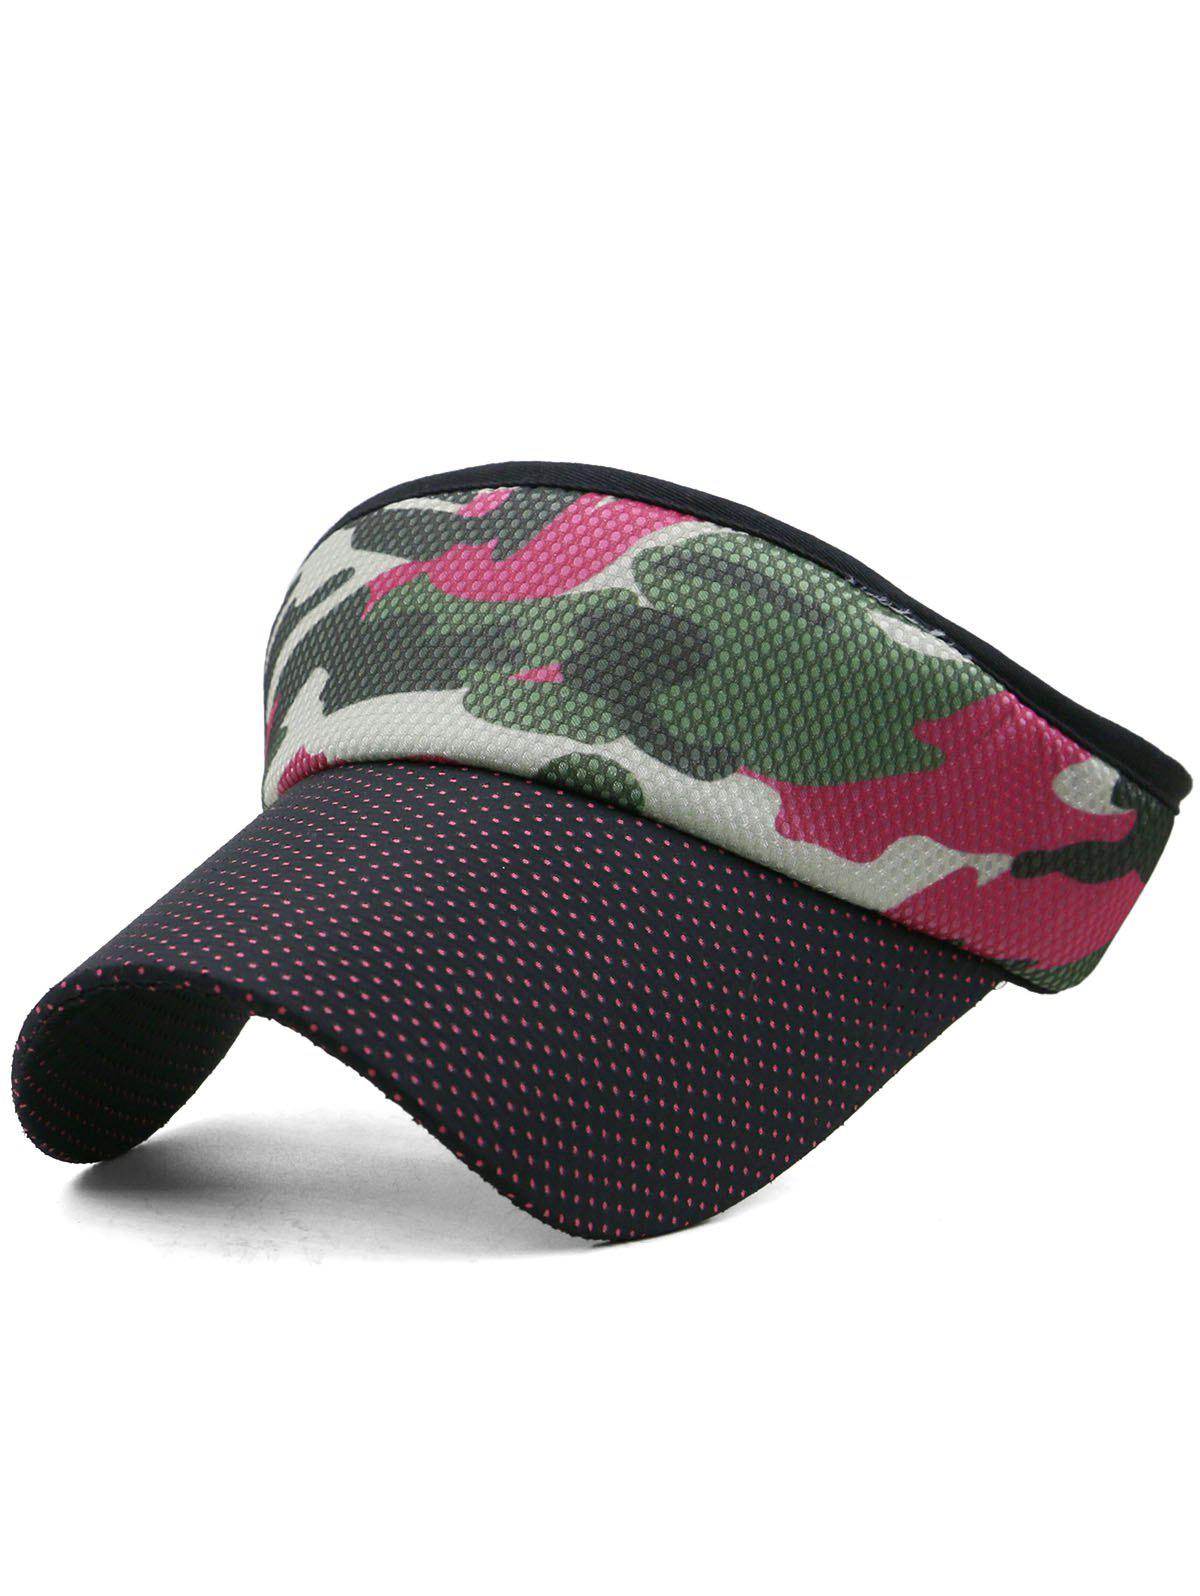 Best Outdoor Camo Printed Open Top Sunscreen Hat